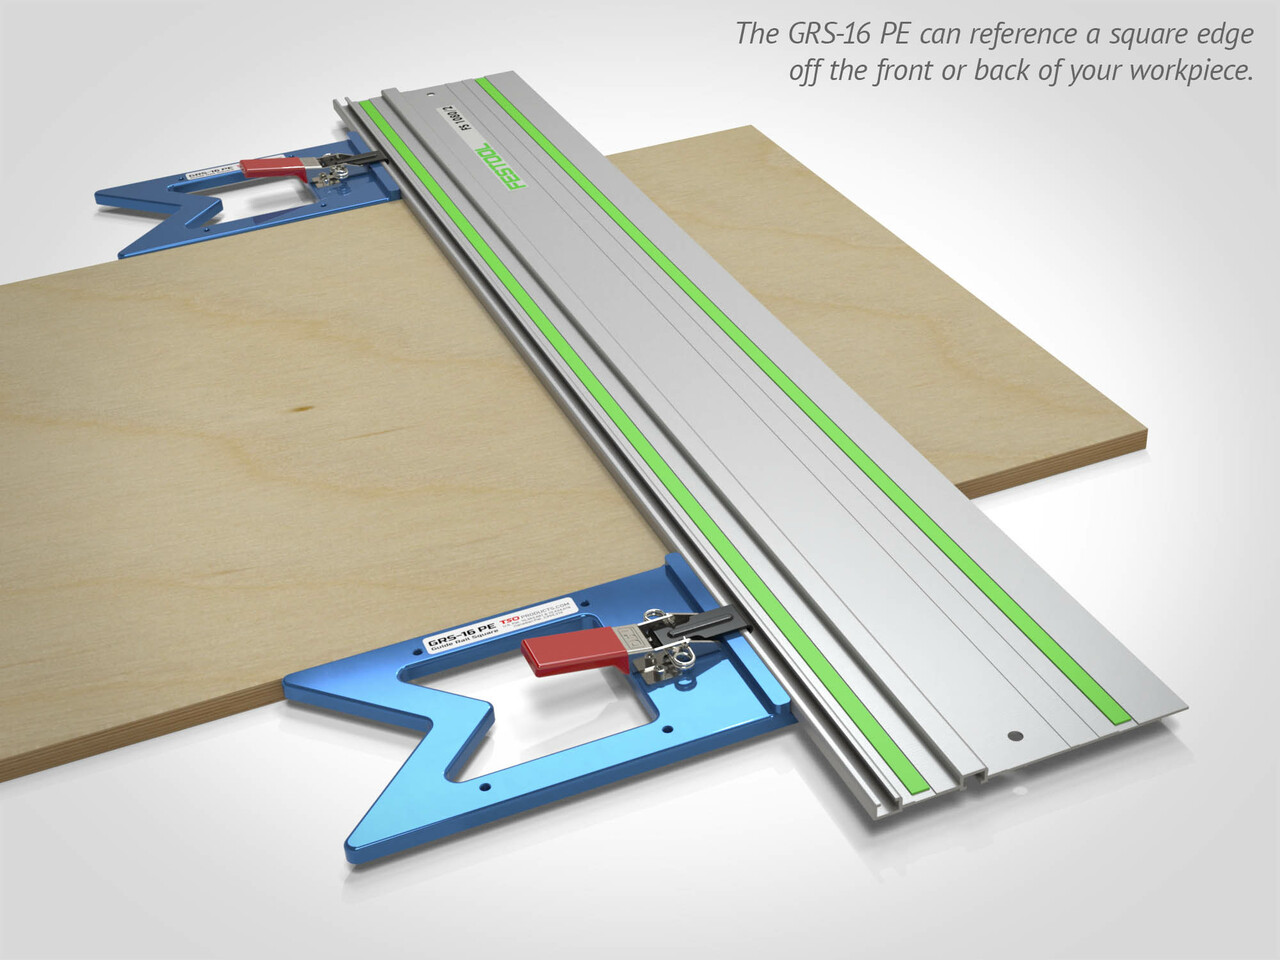 Use the GRS-16 PE to square off either the front or back of your workpiece.